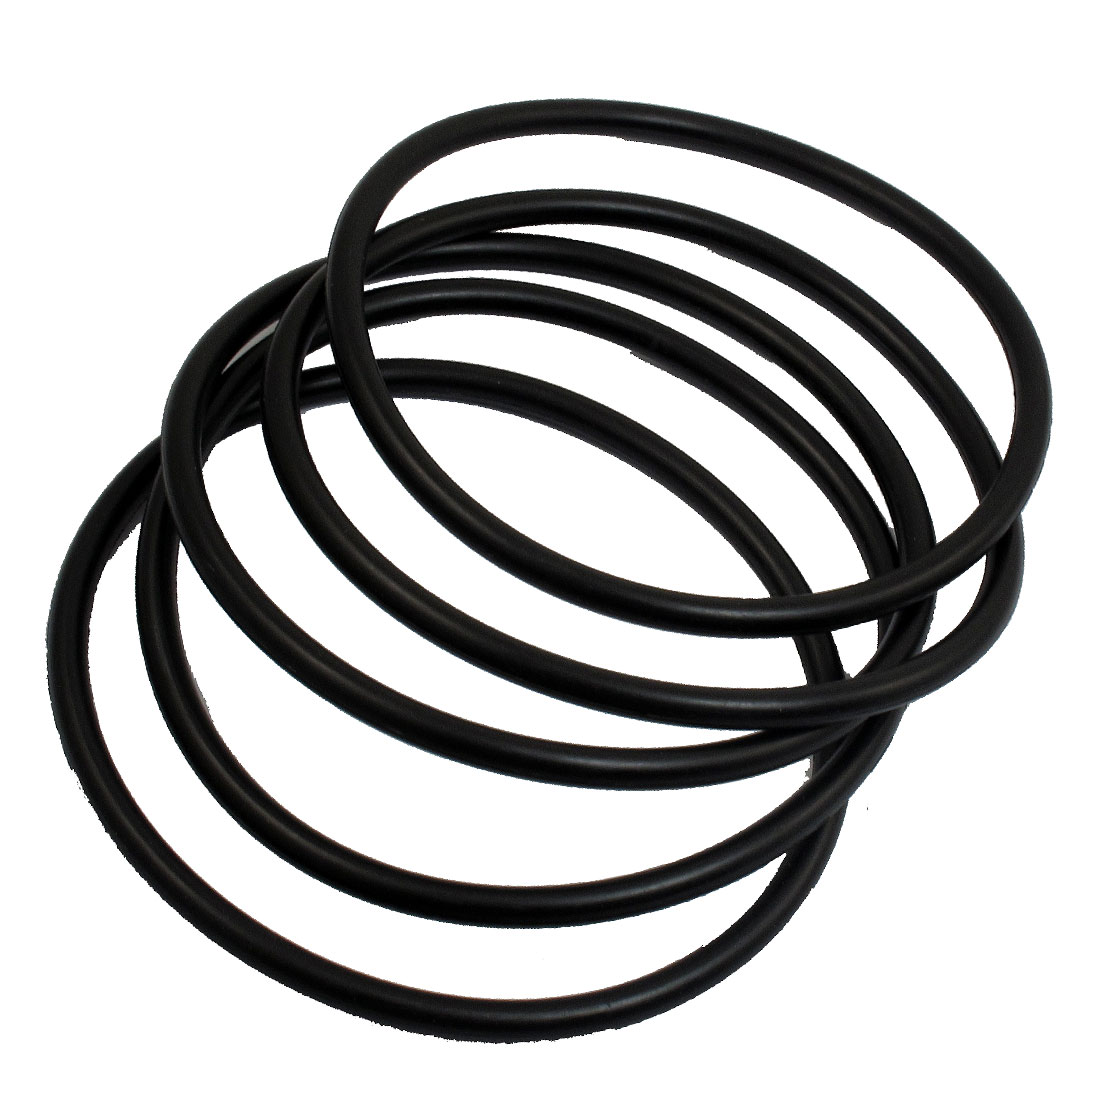 5 Pcs 100mm Outside Dia 5mm Thick Rubber Sealing Oil Filter O Rings Gaskets